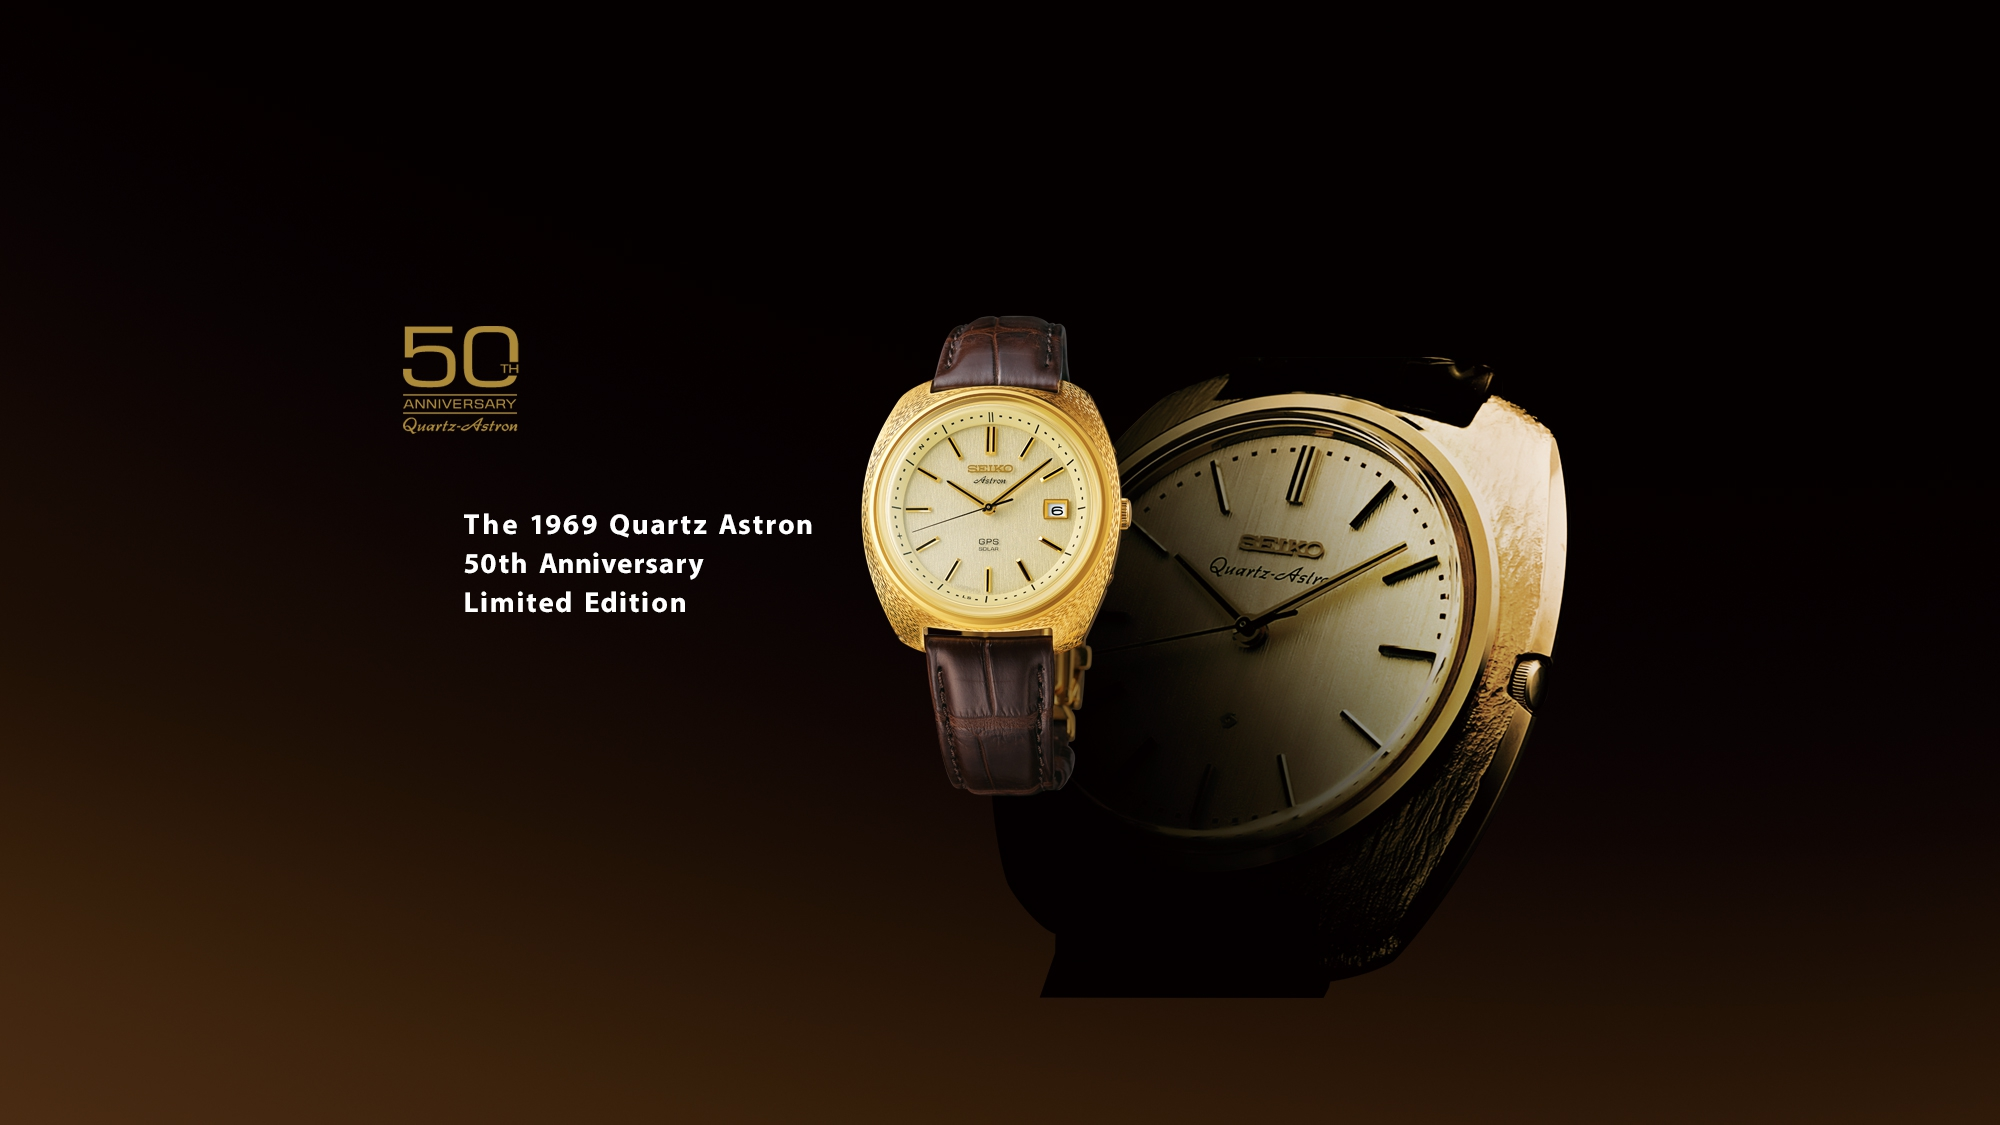 Old seiko watches for men